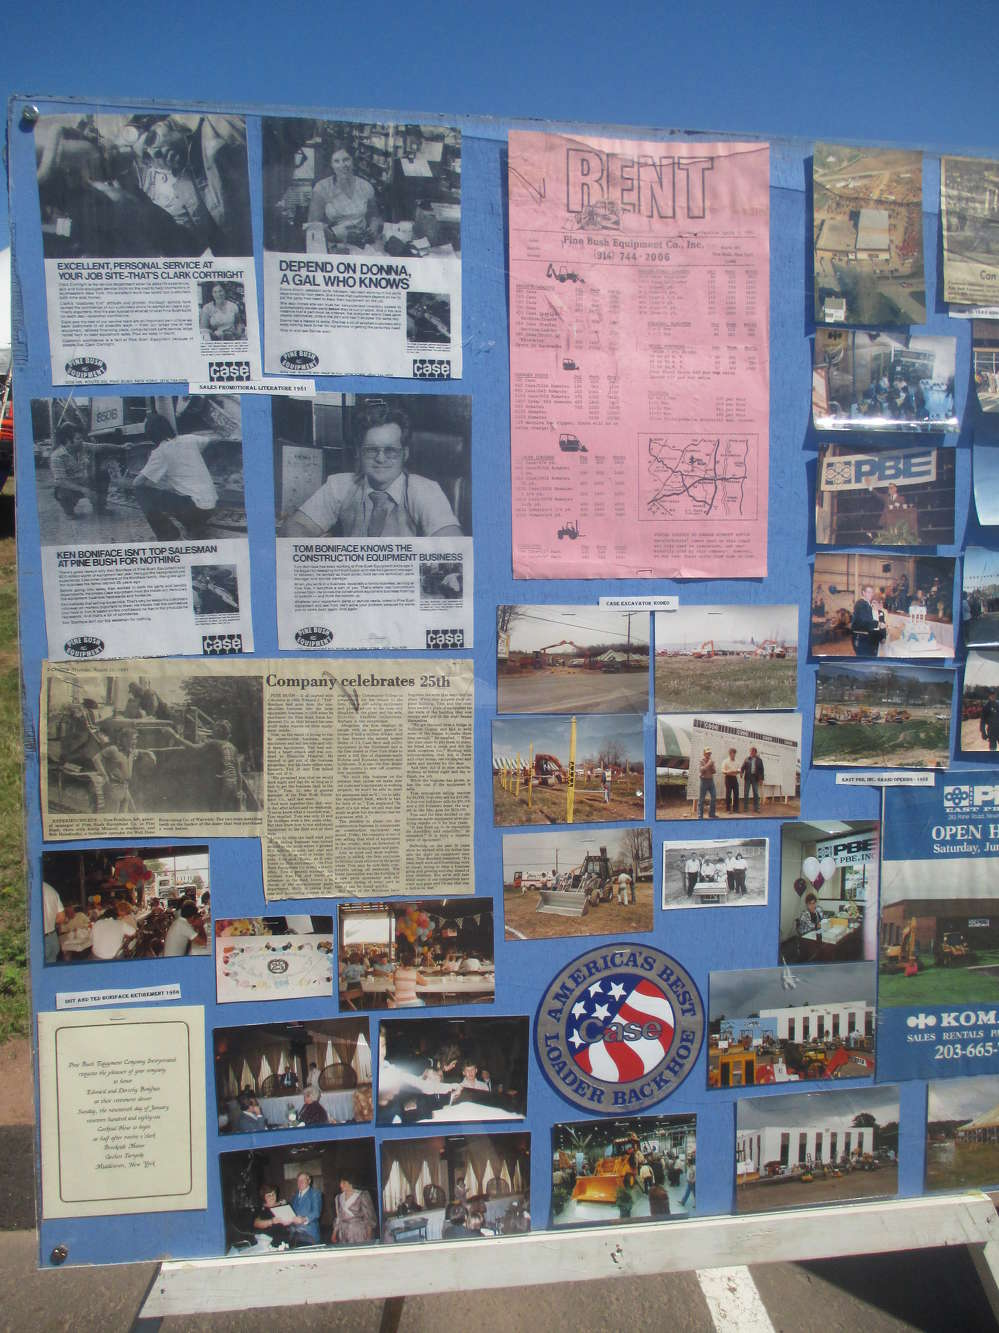 Parts of 60 years of Pine Bush employee and management memories were on display as the family shared photographic images from the 1950s on up.